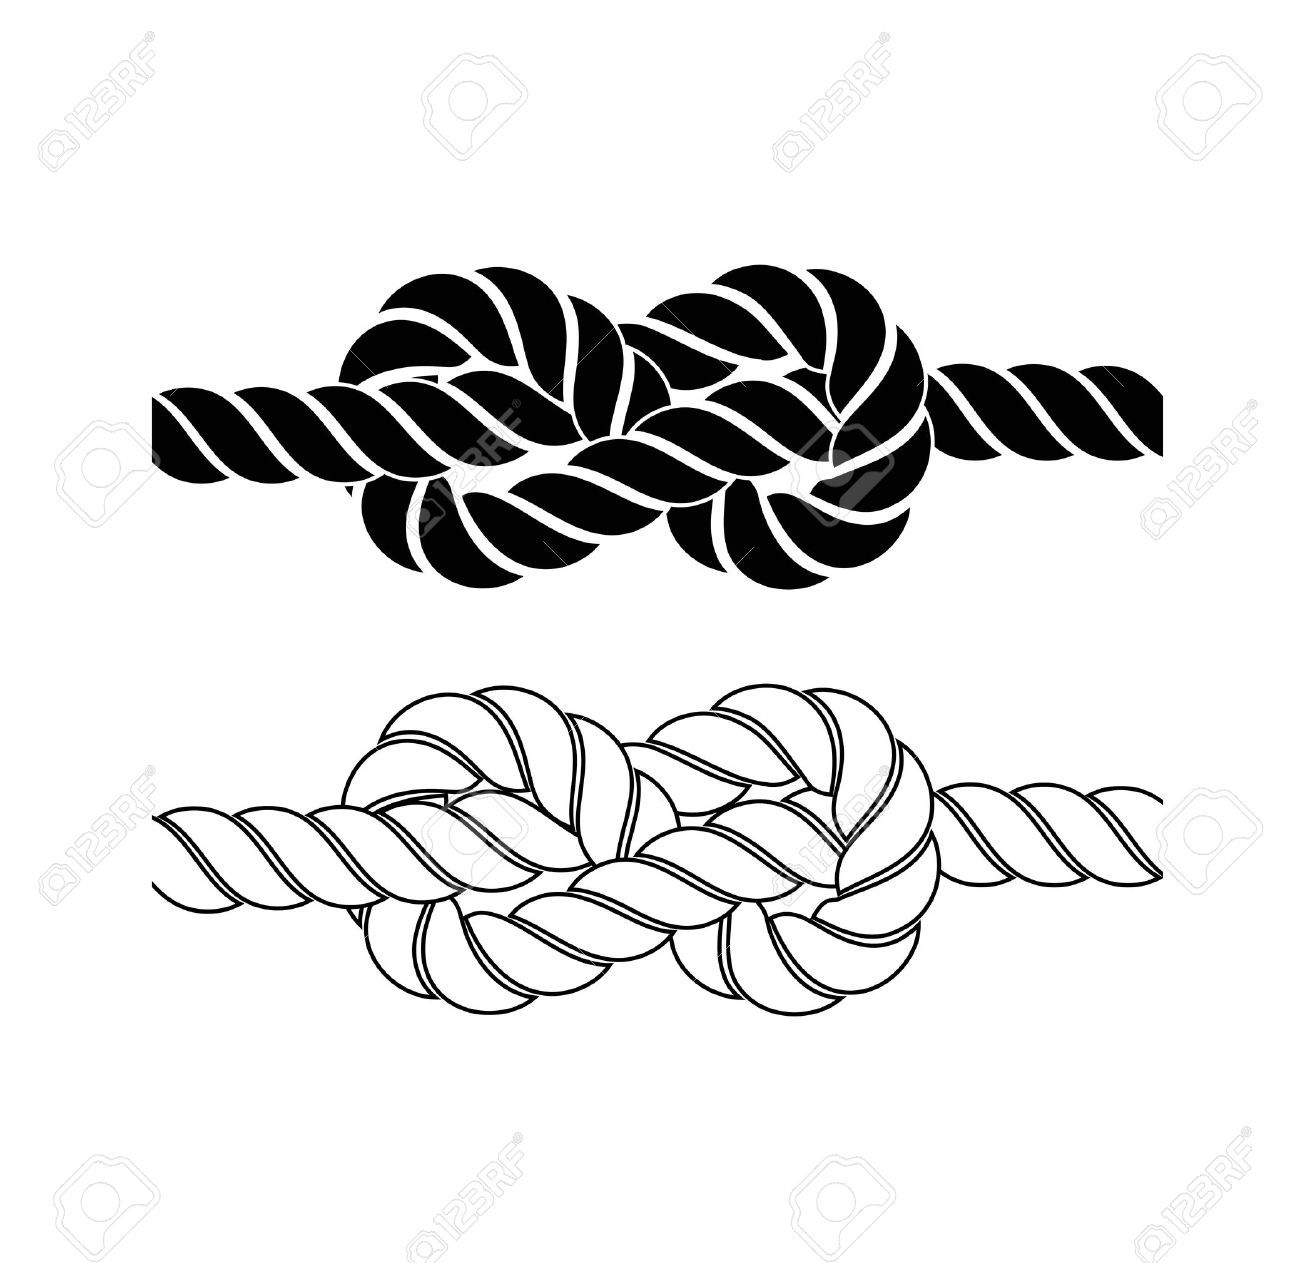 Knotted rope clipart 4 » Clipart Portal.